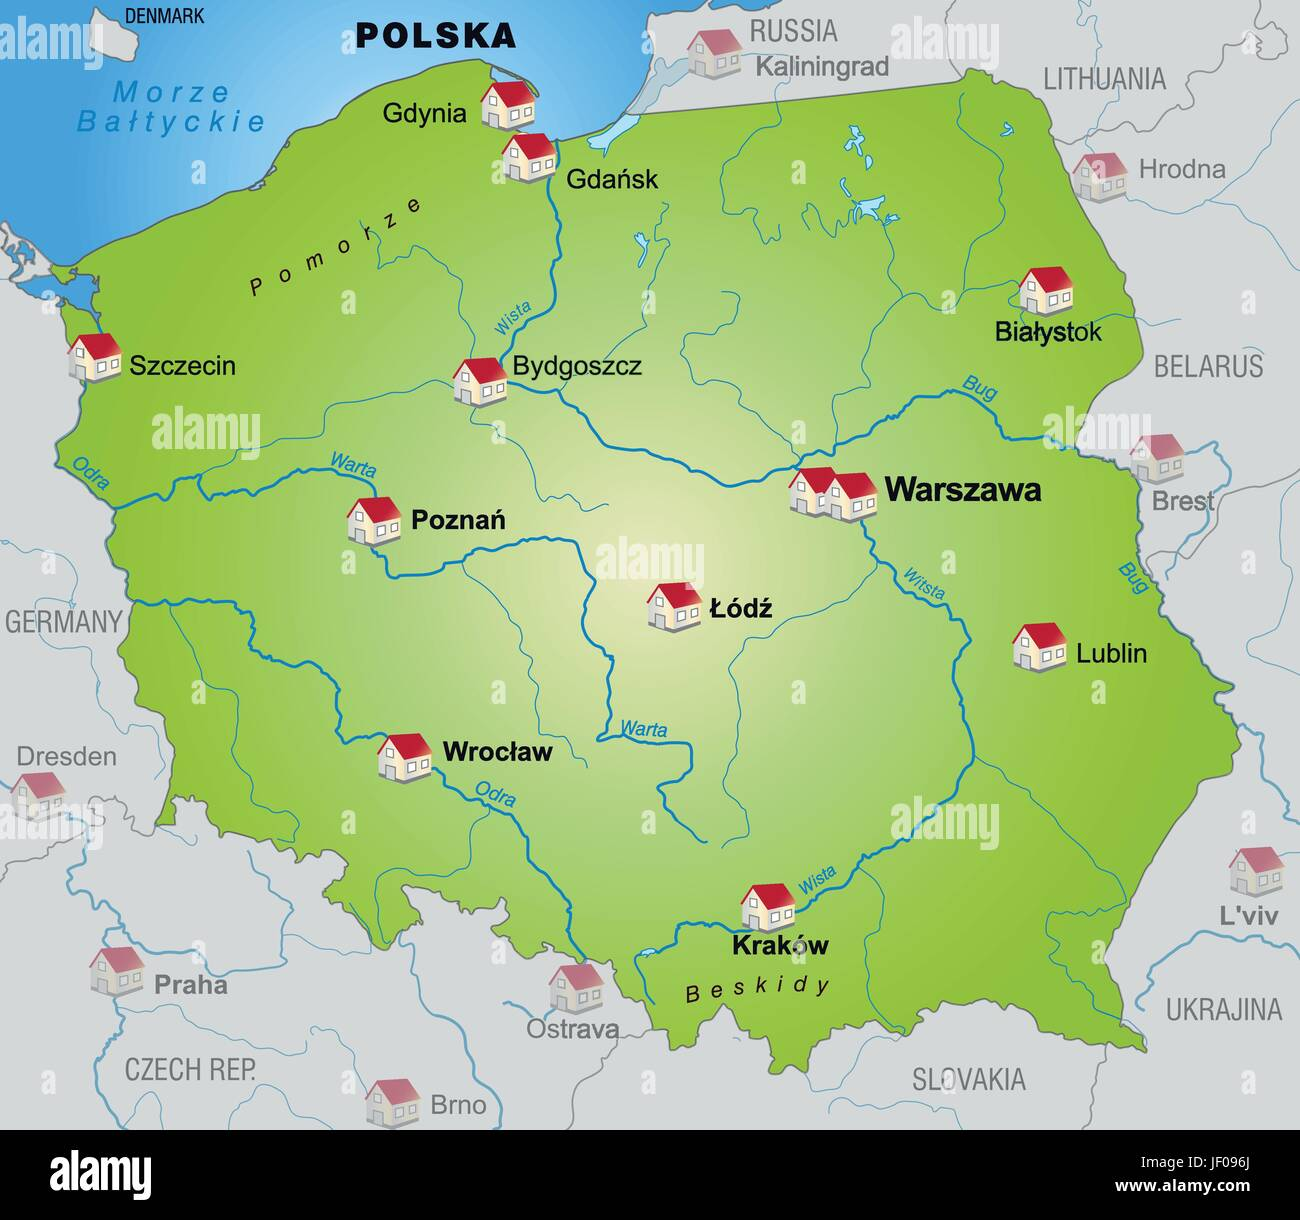 Border Poland Card Synopsis Borders Atlas Map Of The World